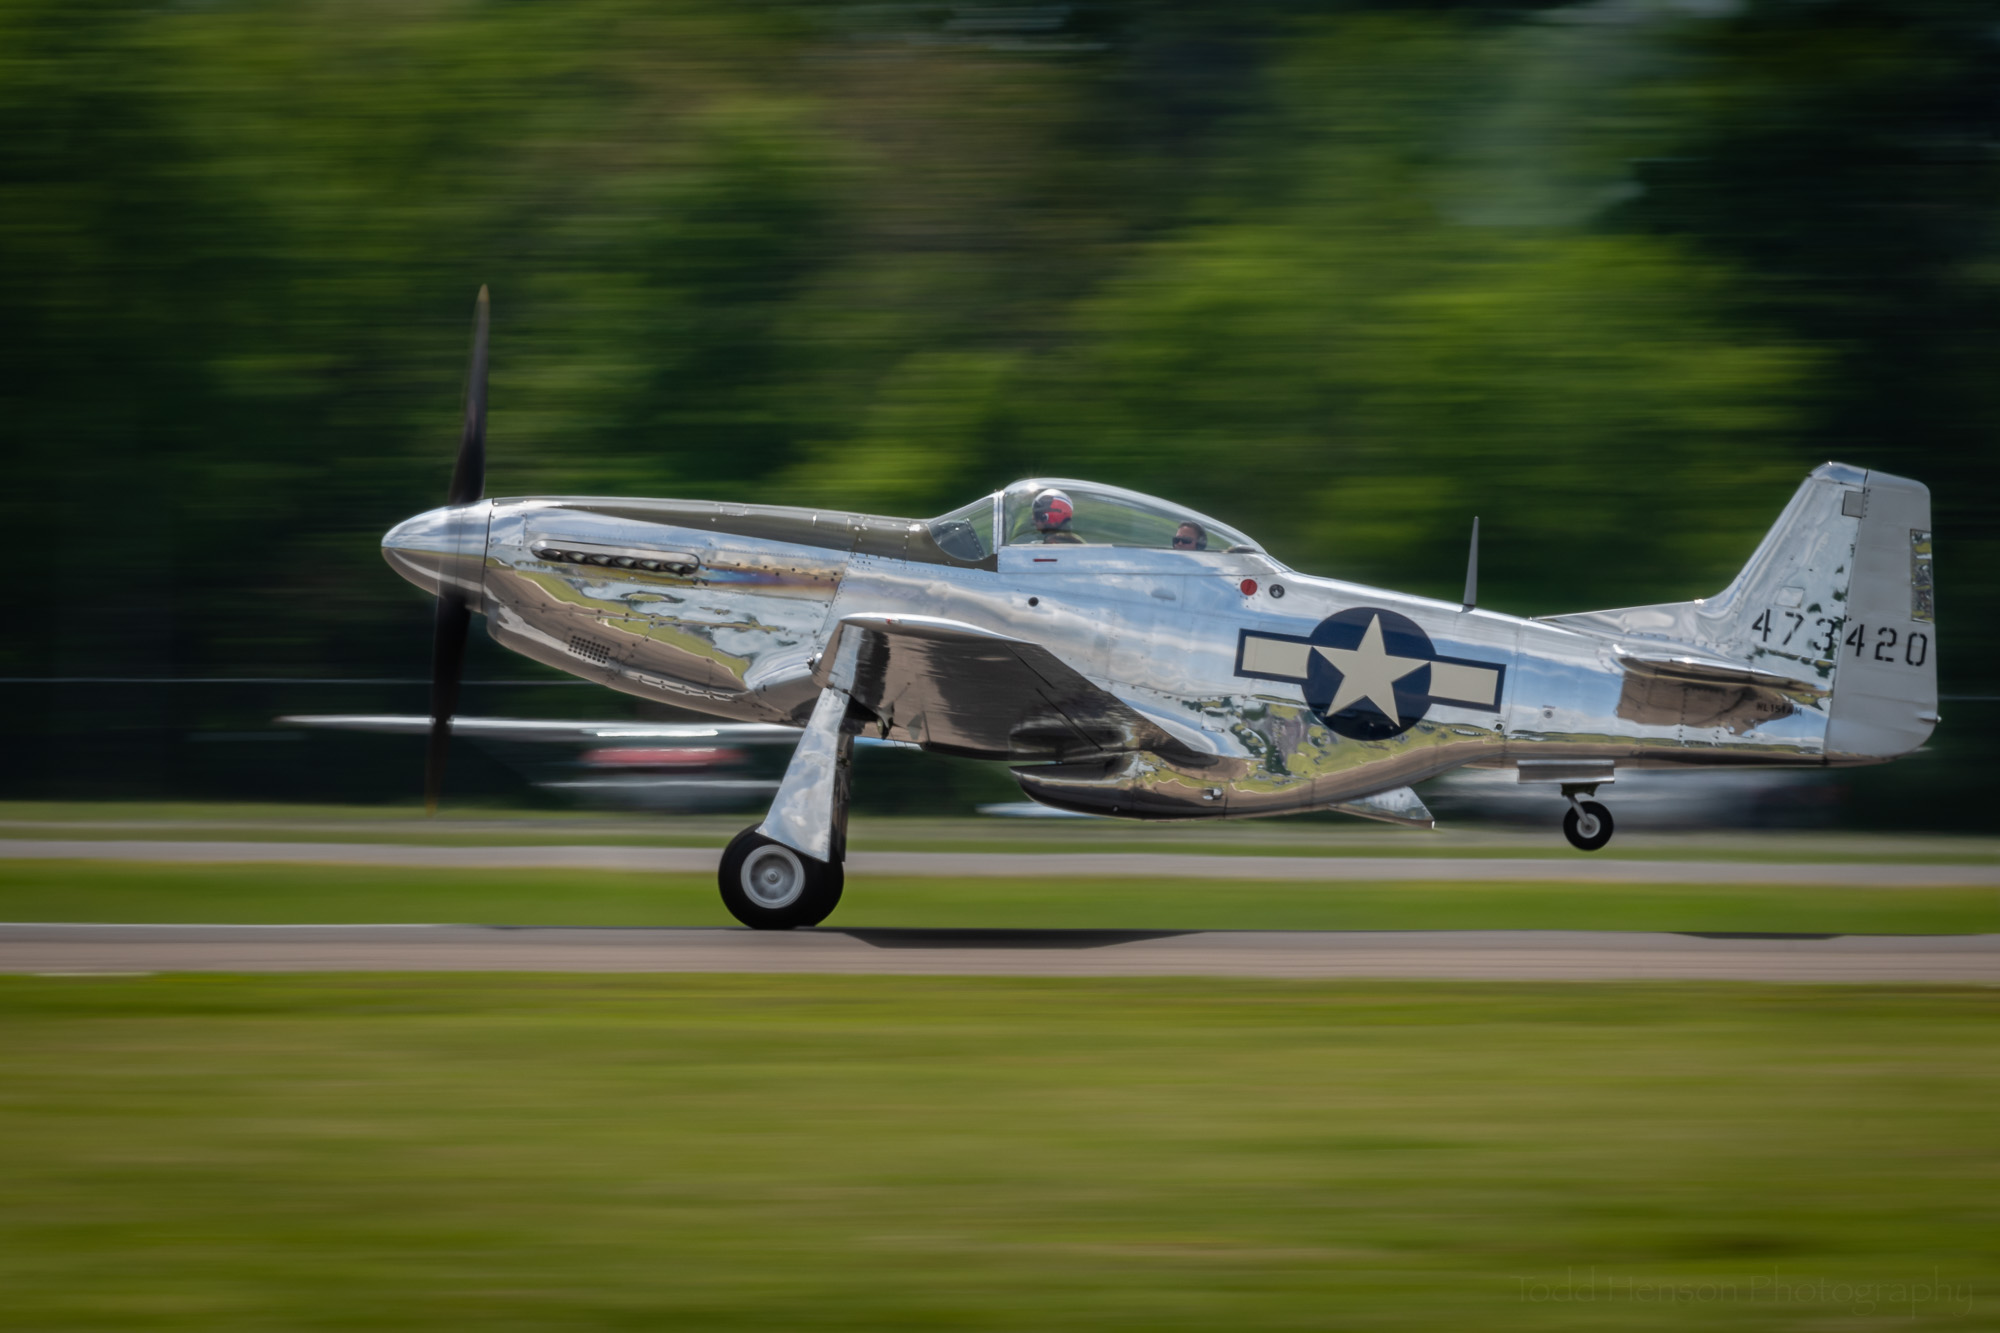 P-51 Mustang taking off. The rear tire has already left the runway.